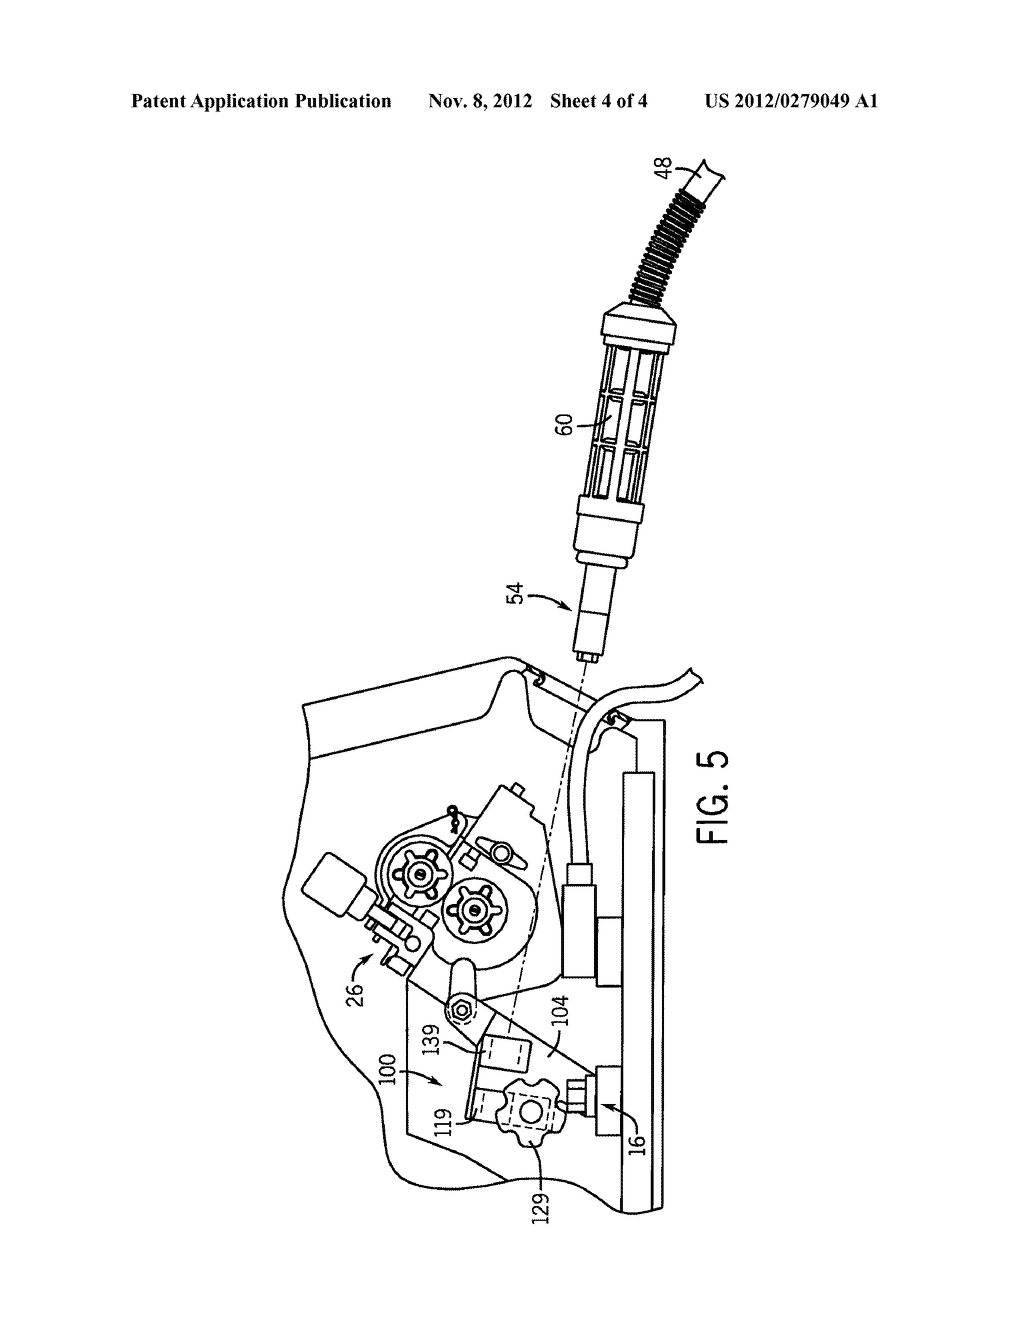 Dual Power Pin Connector Assembly For A Mig Welding Machine Welder Diagram Schematic And Image 05